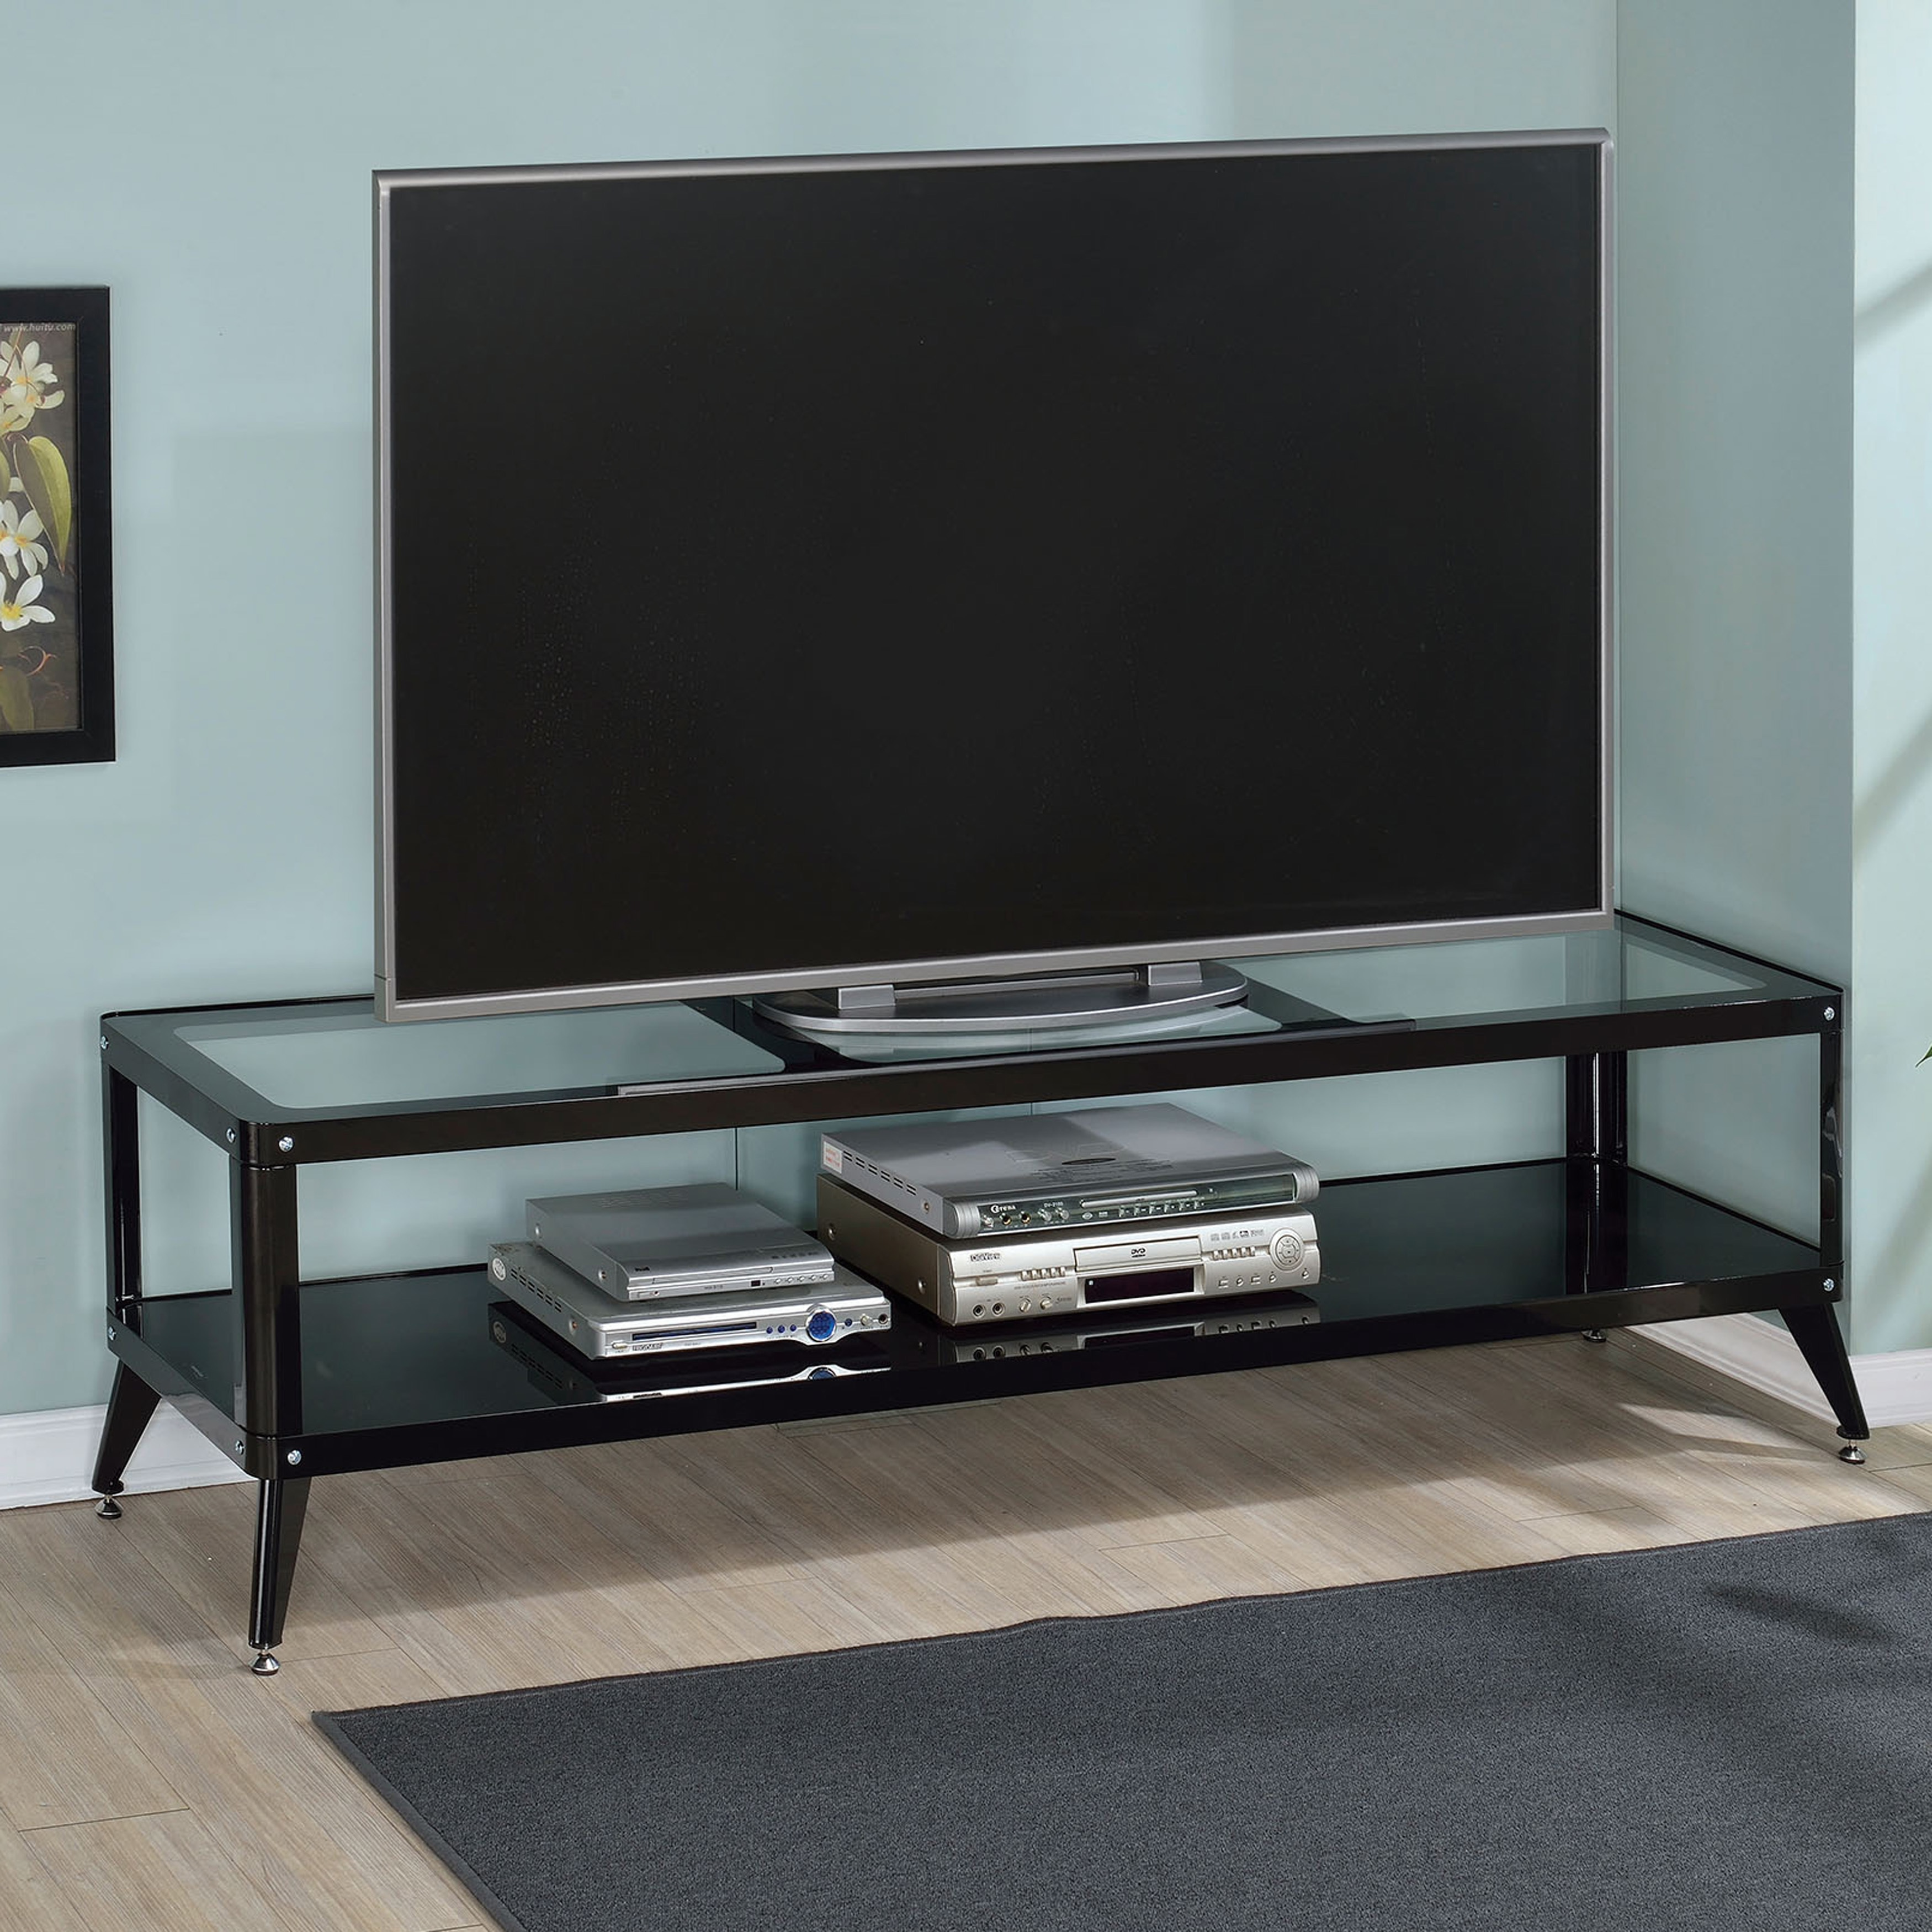 Shop Furniture Of America Linden Modern Glass Top Tv Stand On Sale